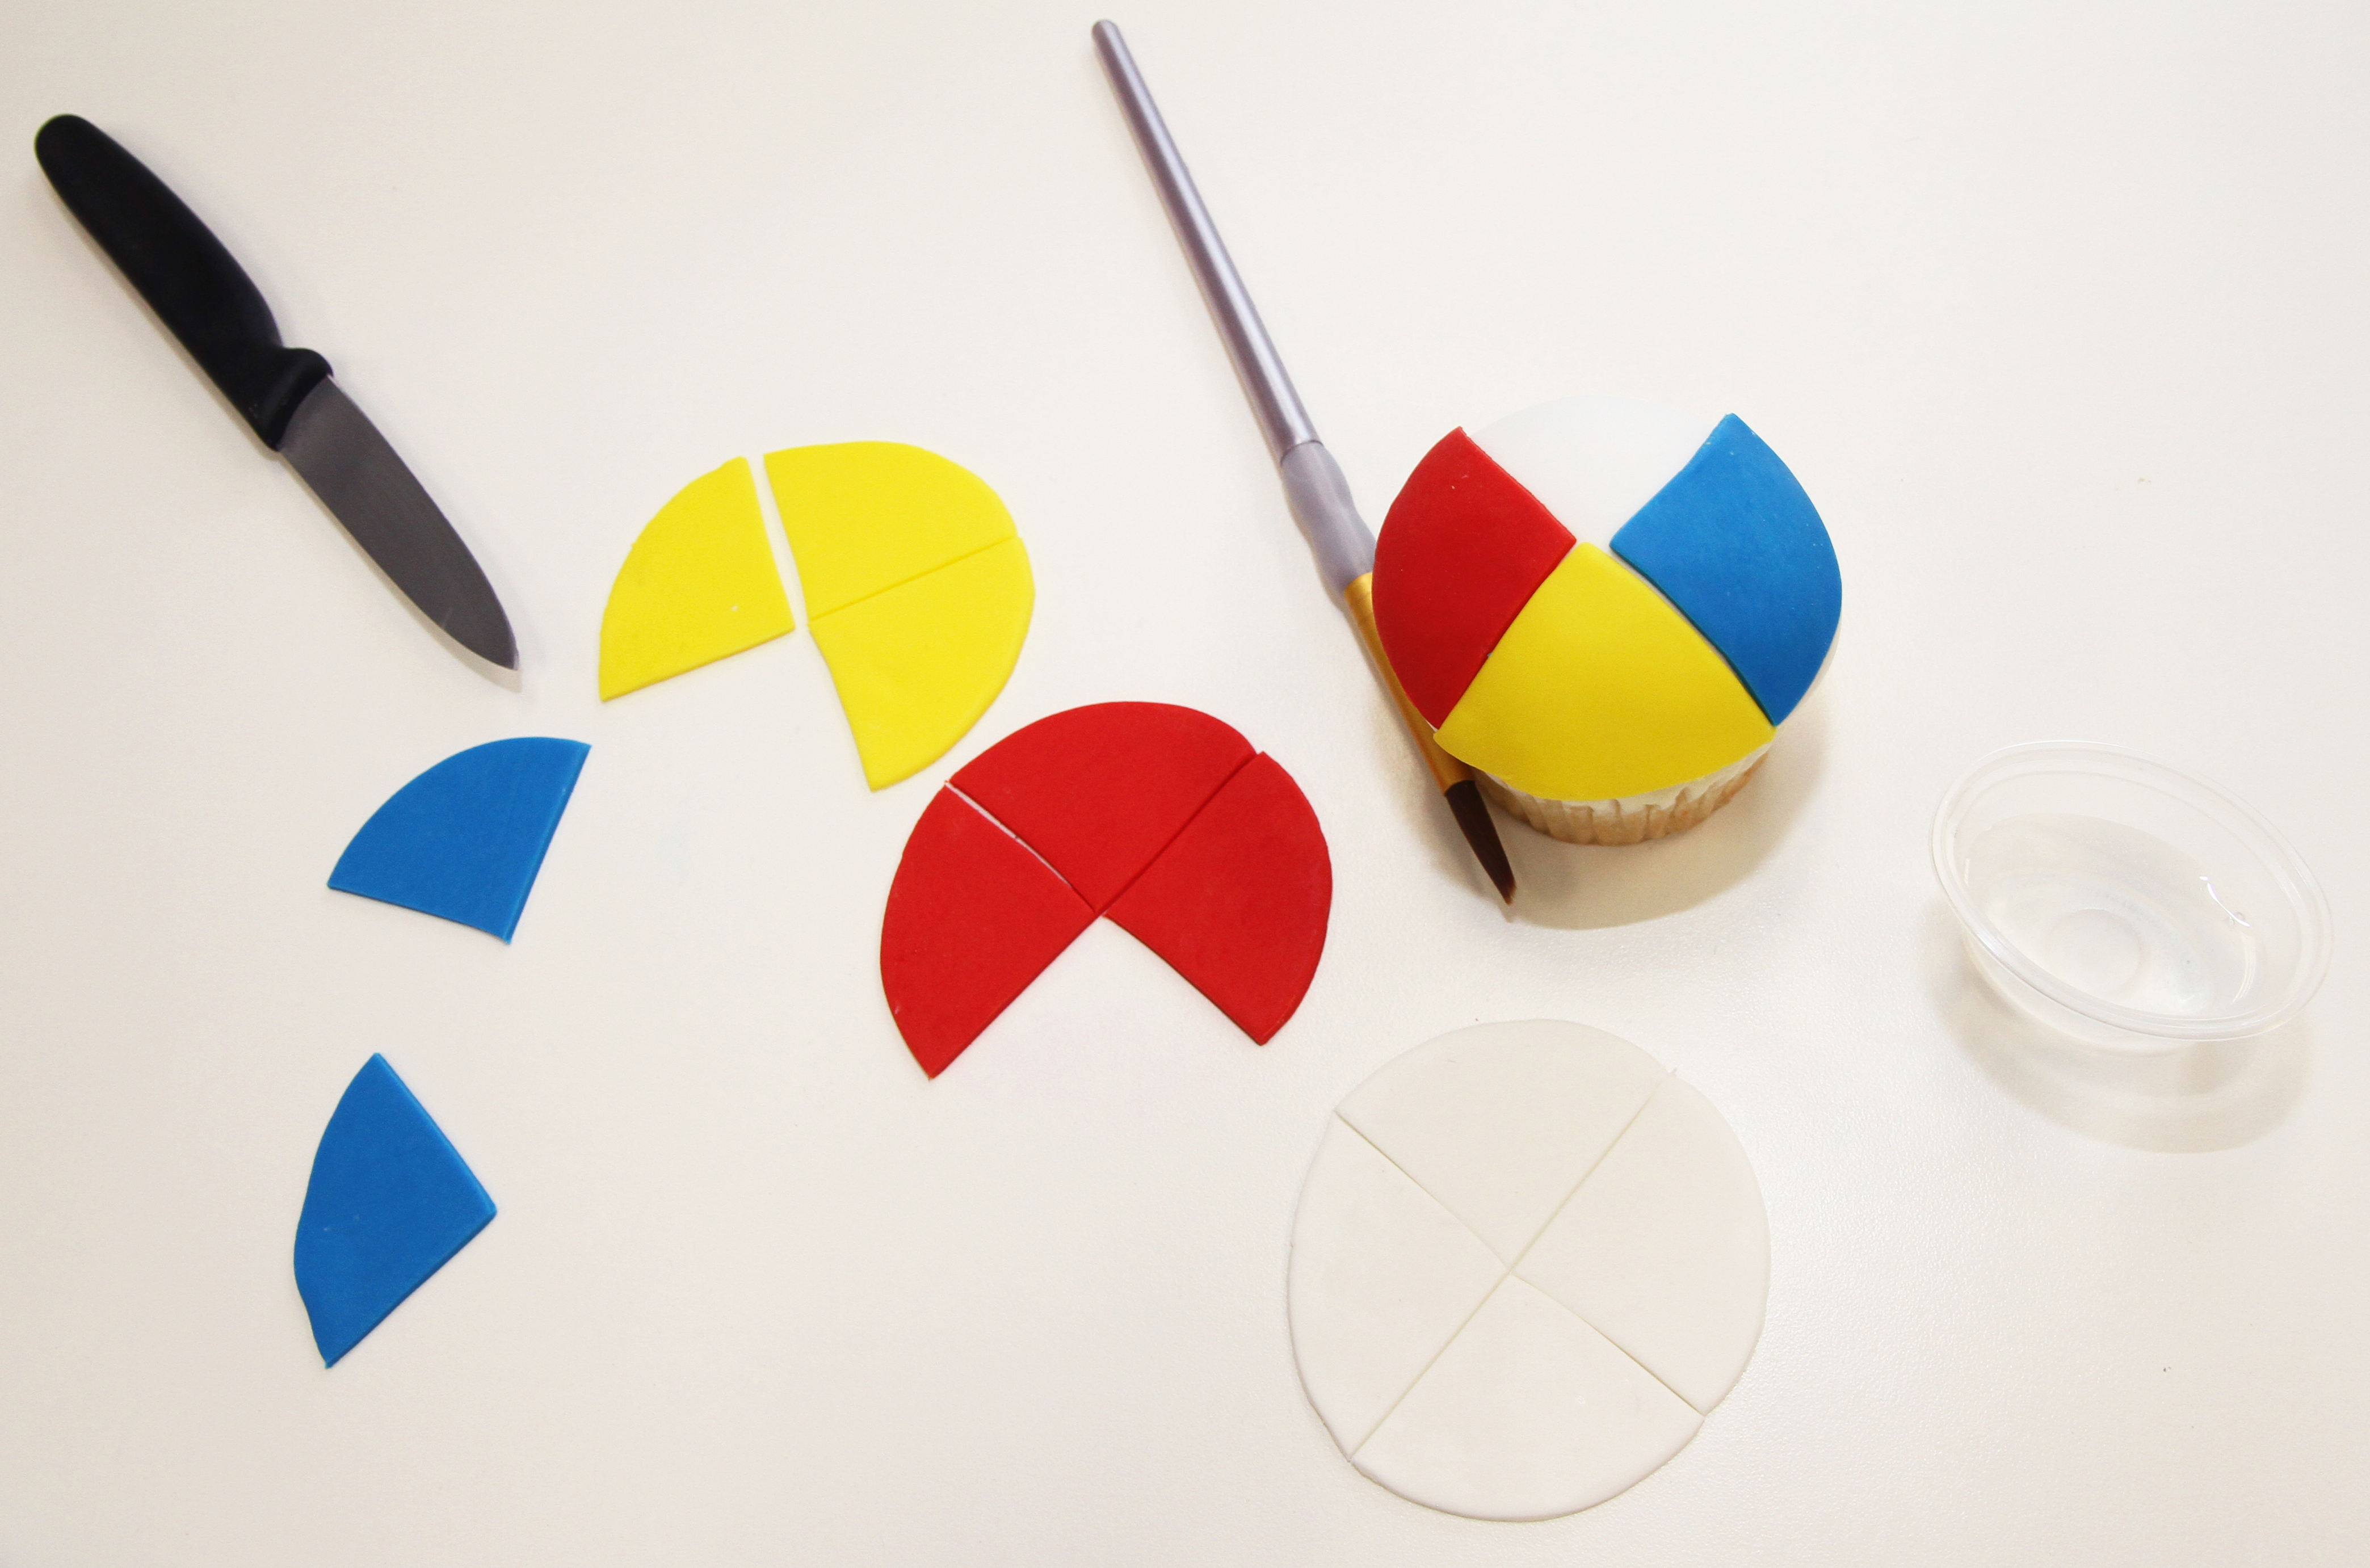 beach-ball-6.jpg#asset:15567